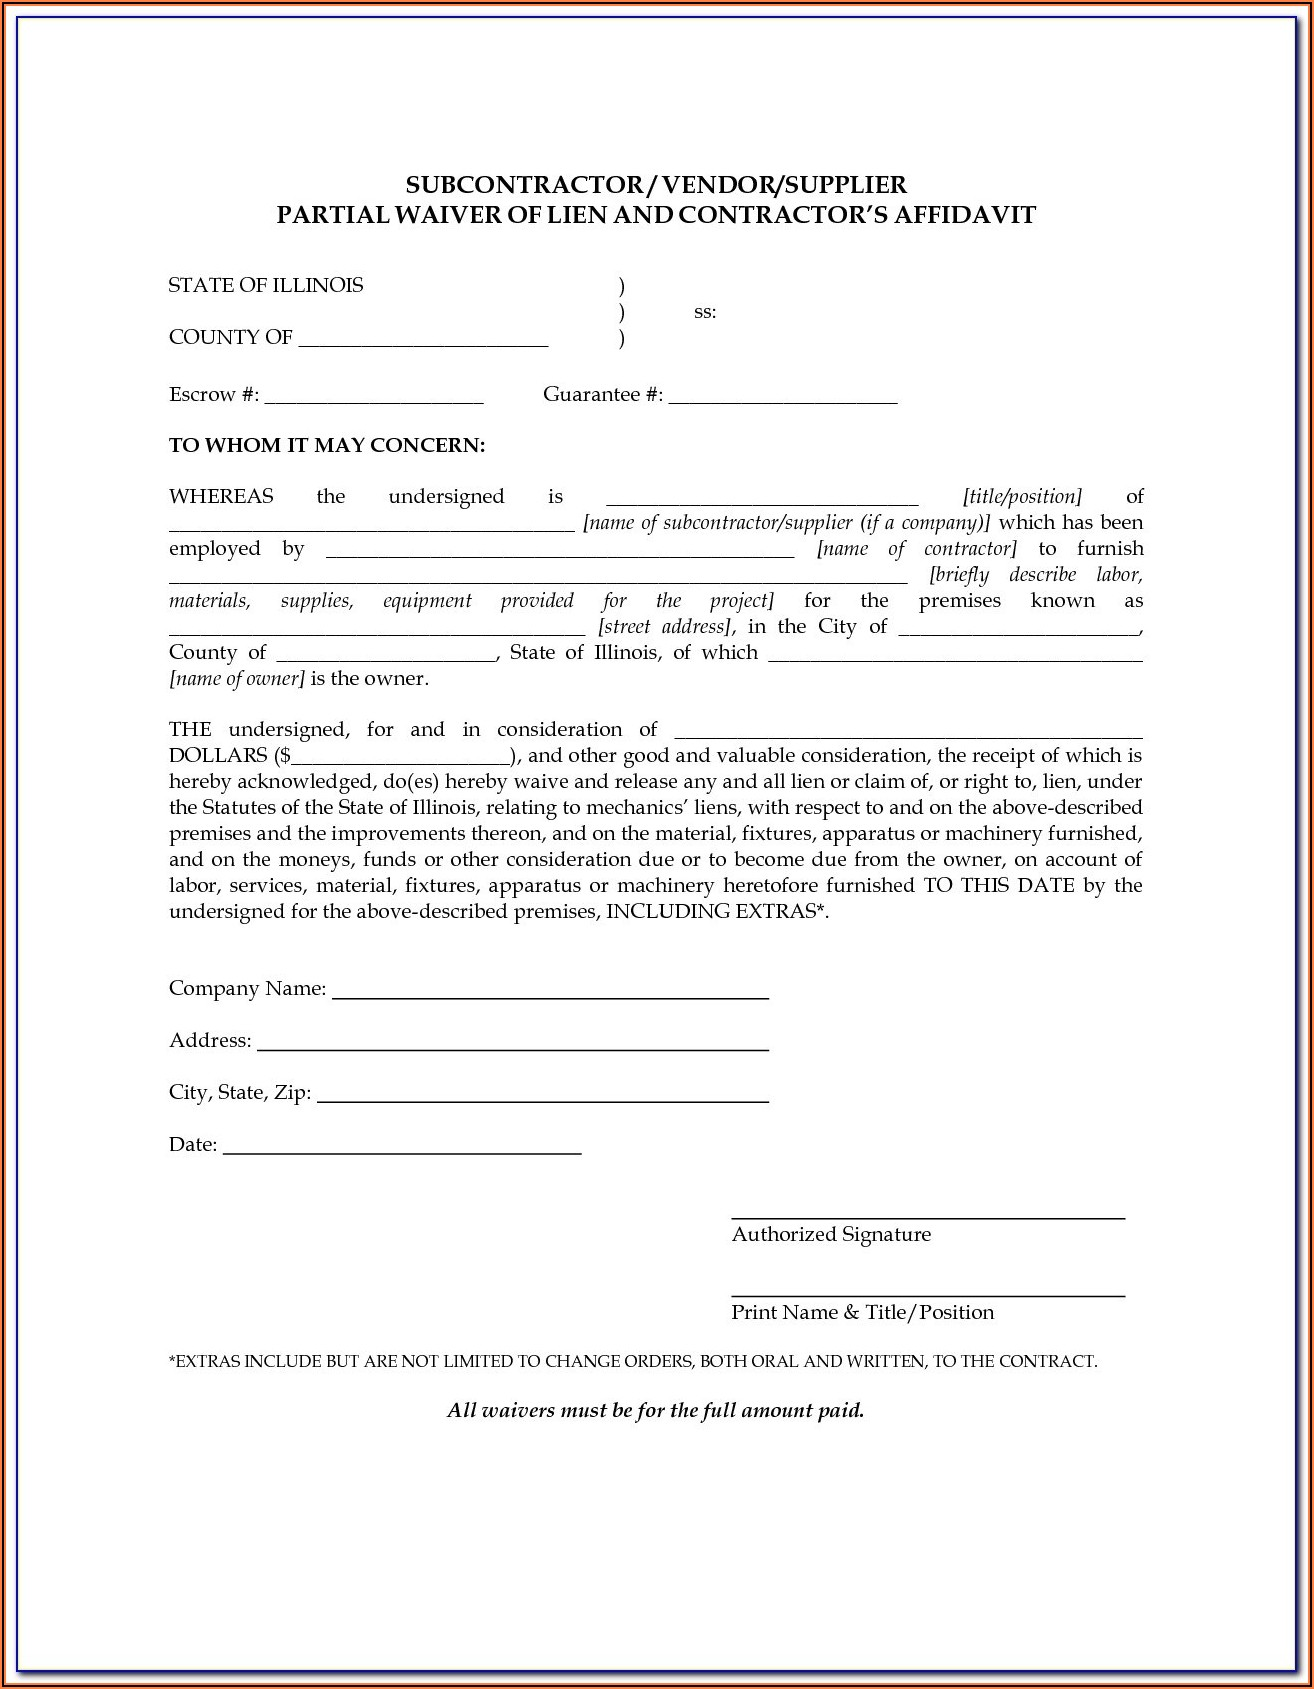 Missouri Mechanics Lien Waiver Form